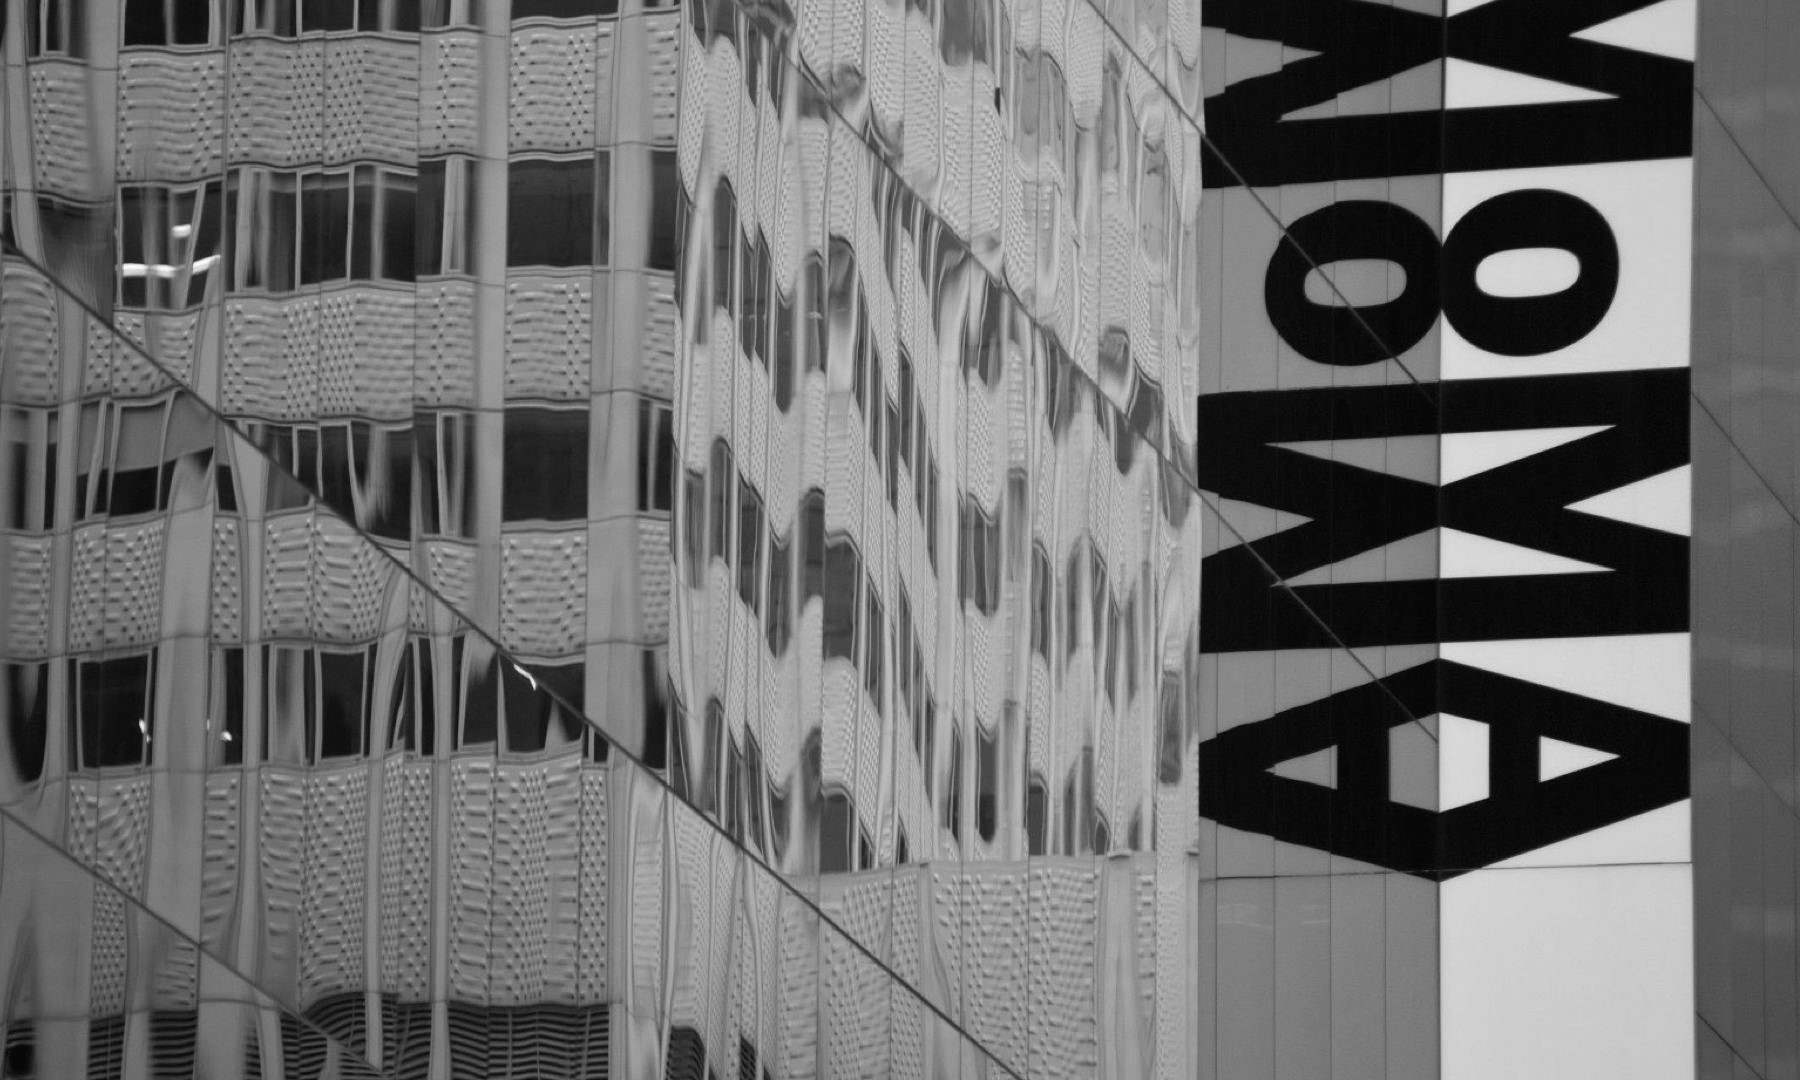 MoMA R&D and The Connected Object